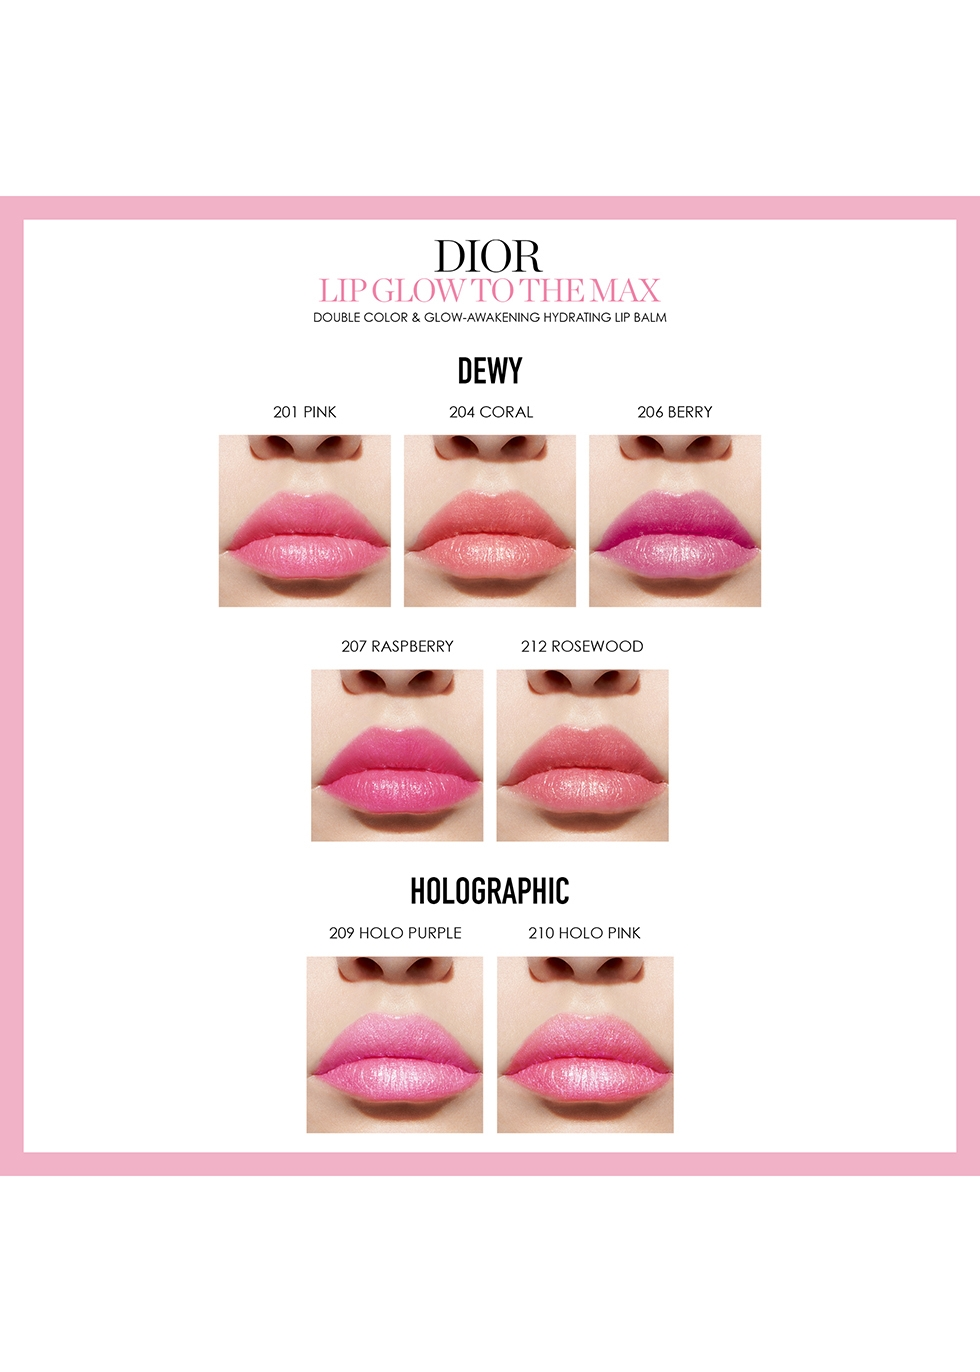 Lip Glow To The Max - Dior